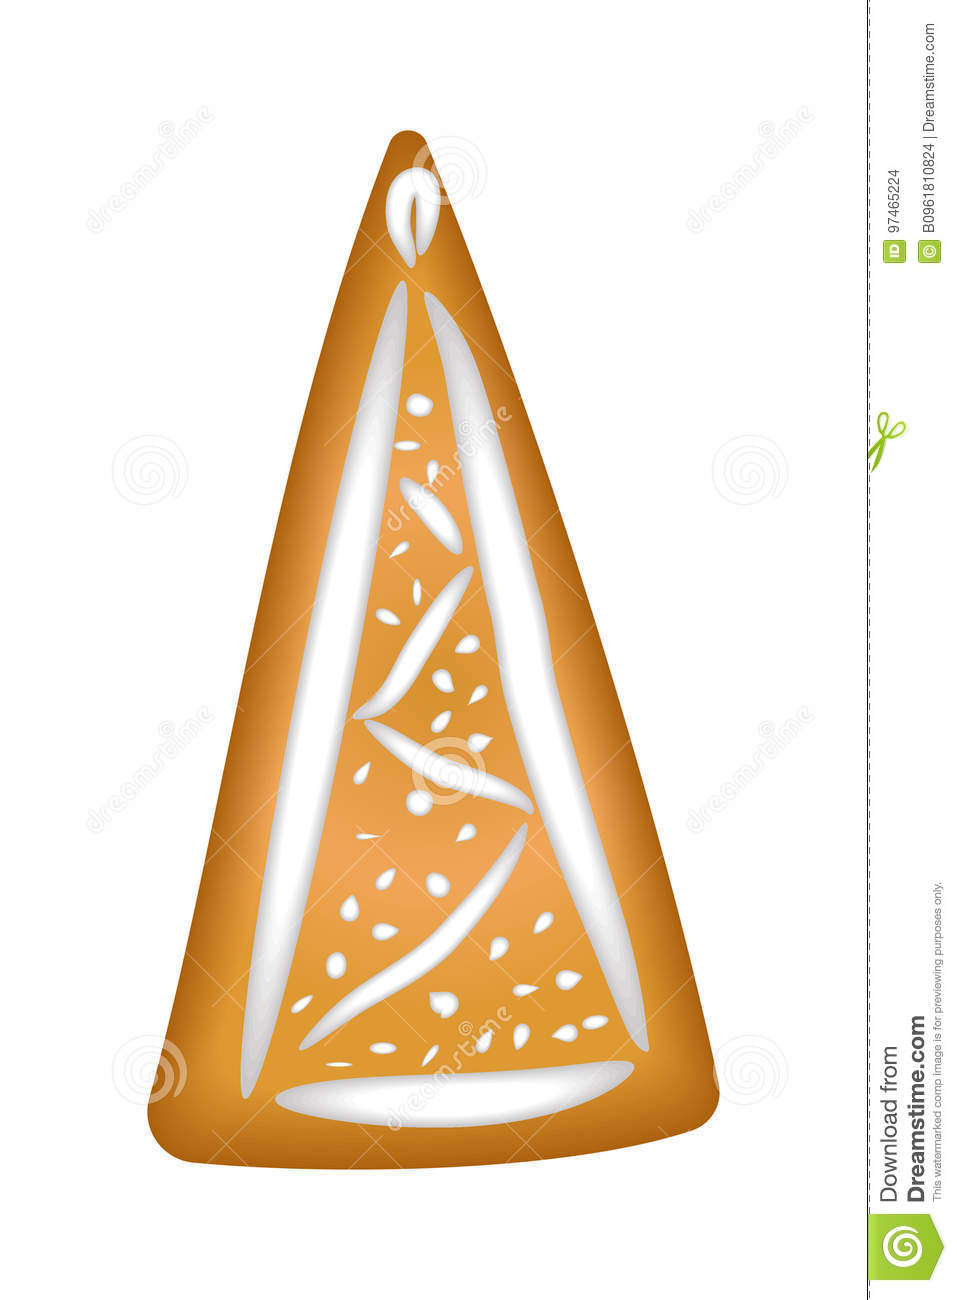 Gingerbread tree with glaze. Isolated. Christmas. Handmade. Draw